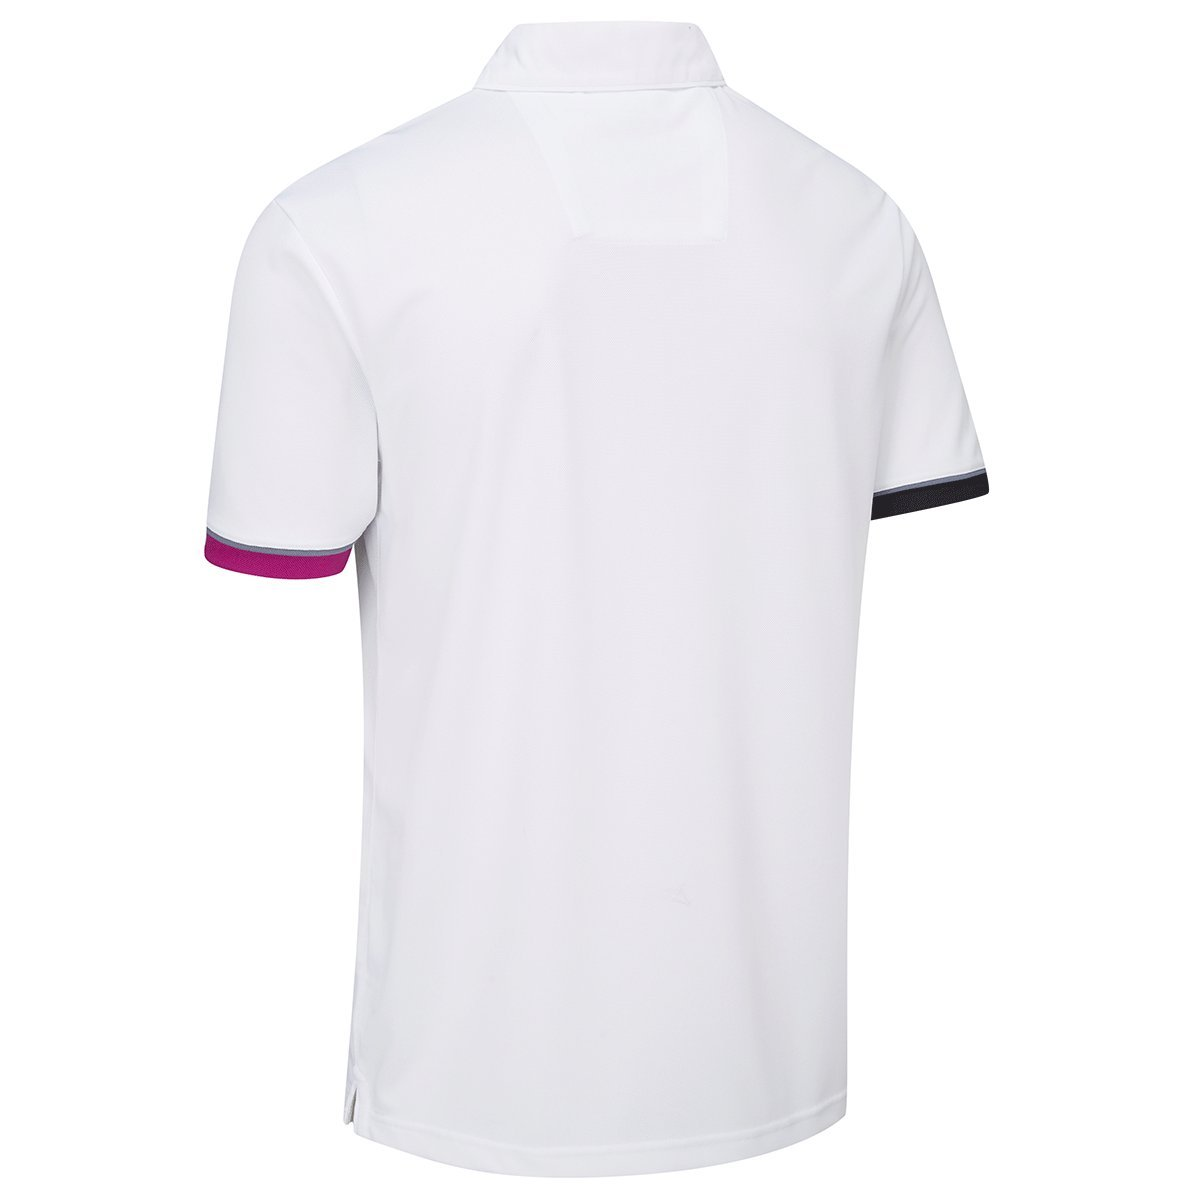 Stuburt 2018 Hommes Dri-Back Urban Response Polo à manches courtes de golf White Medium GoAKQqdpR